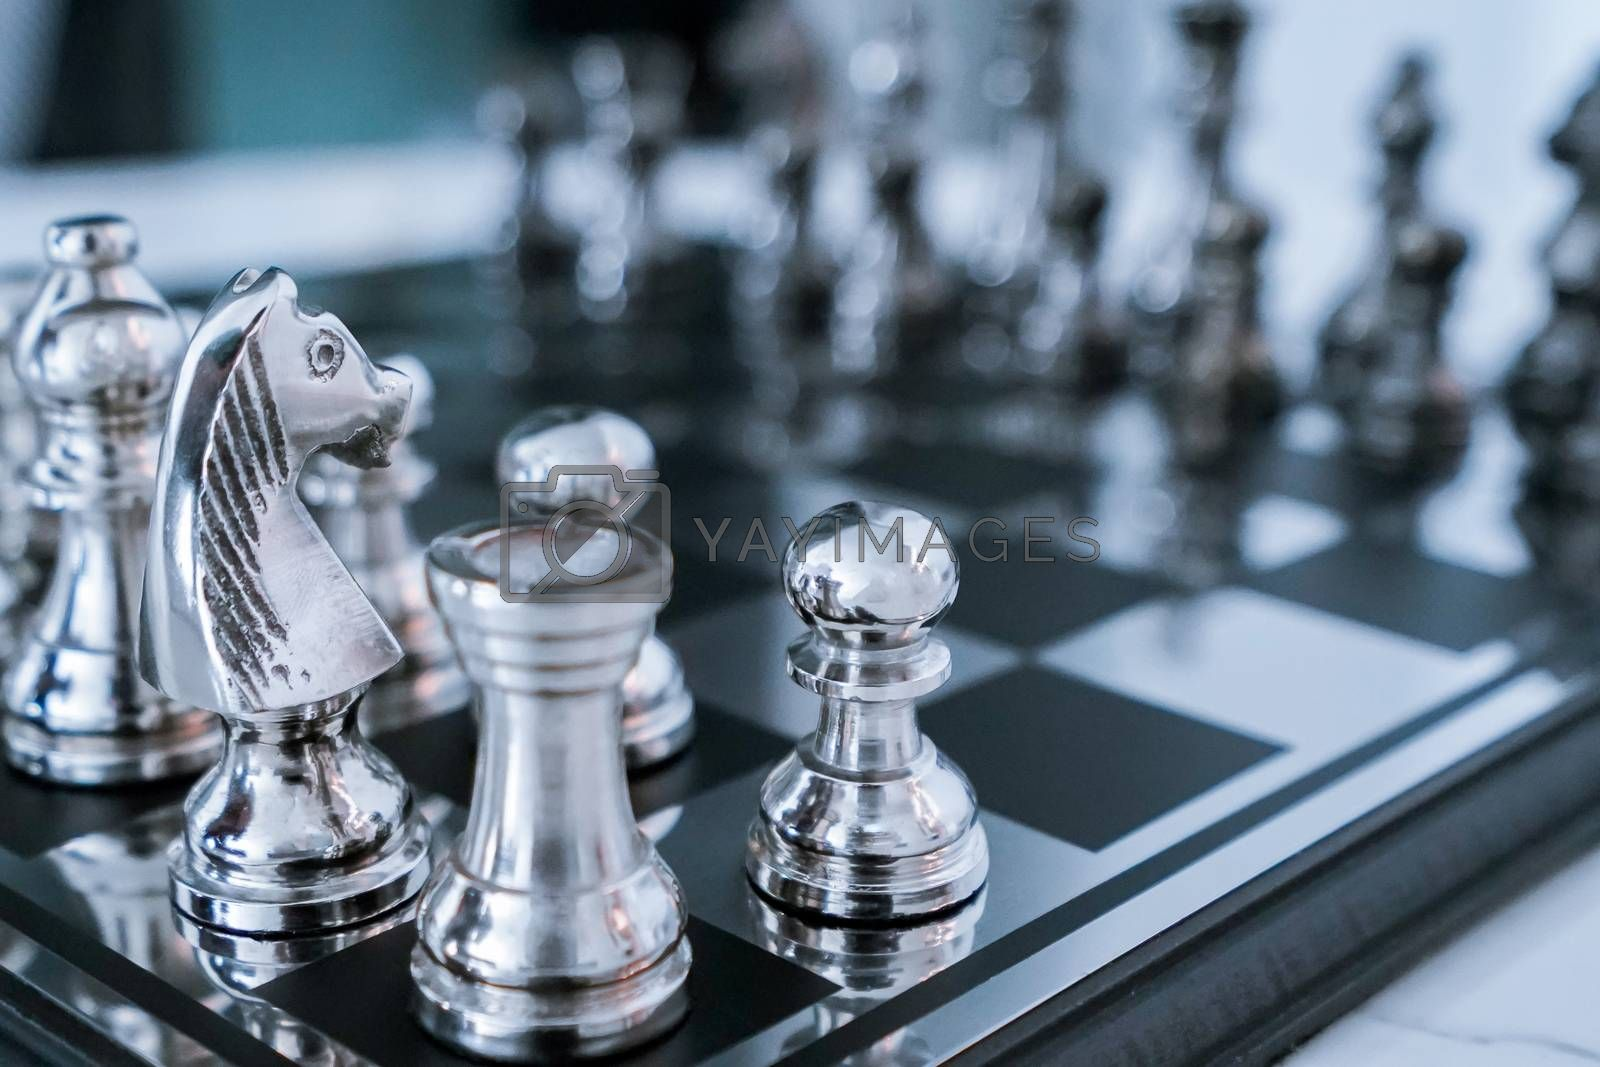 Royalty free image of chess board game by antpkr